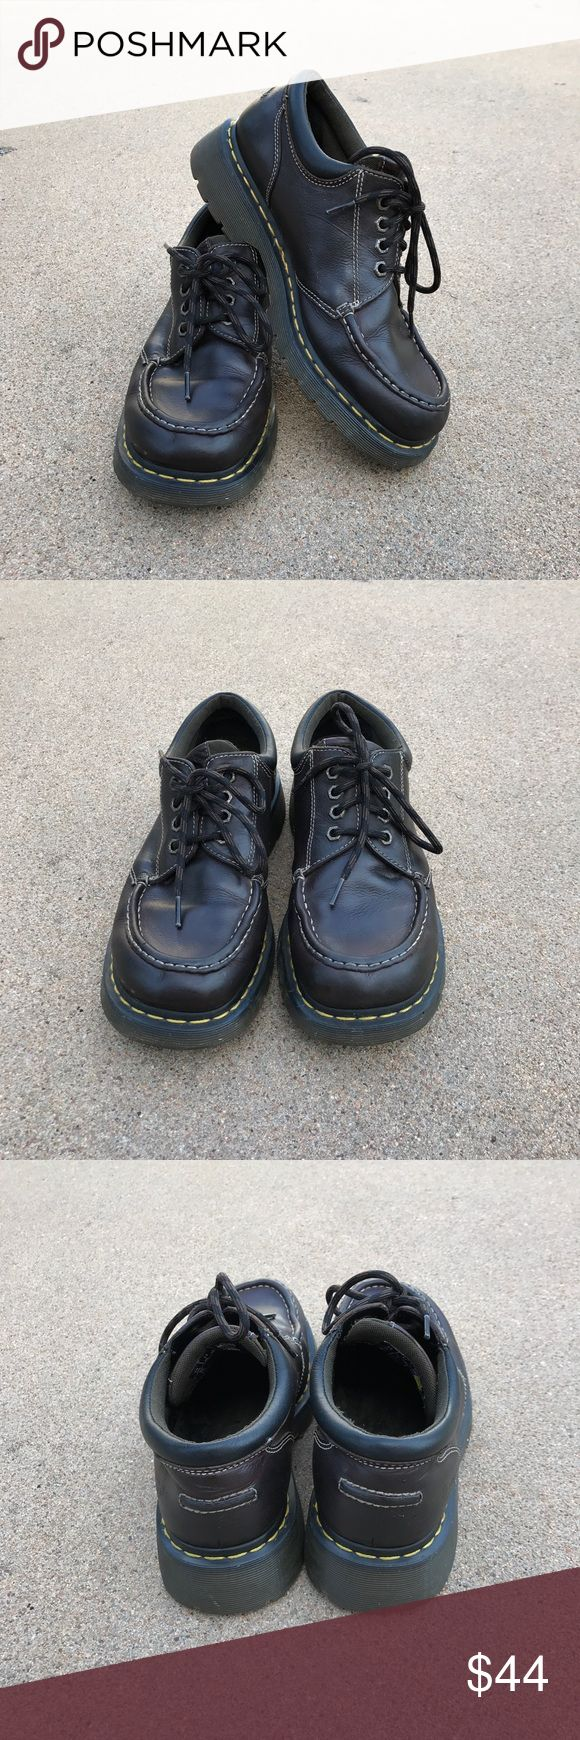 Dr Martens Airwair Men's Shoes Brown Leather Dr Martens Airwair Men's Shoes Brown Leather OXFORD Lace Up Size 11 M Condition: pre-owned, typical wear, scuffs inside and outside. Dr Martens Shoes Oxfords & Derbys